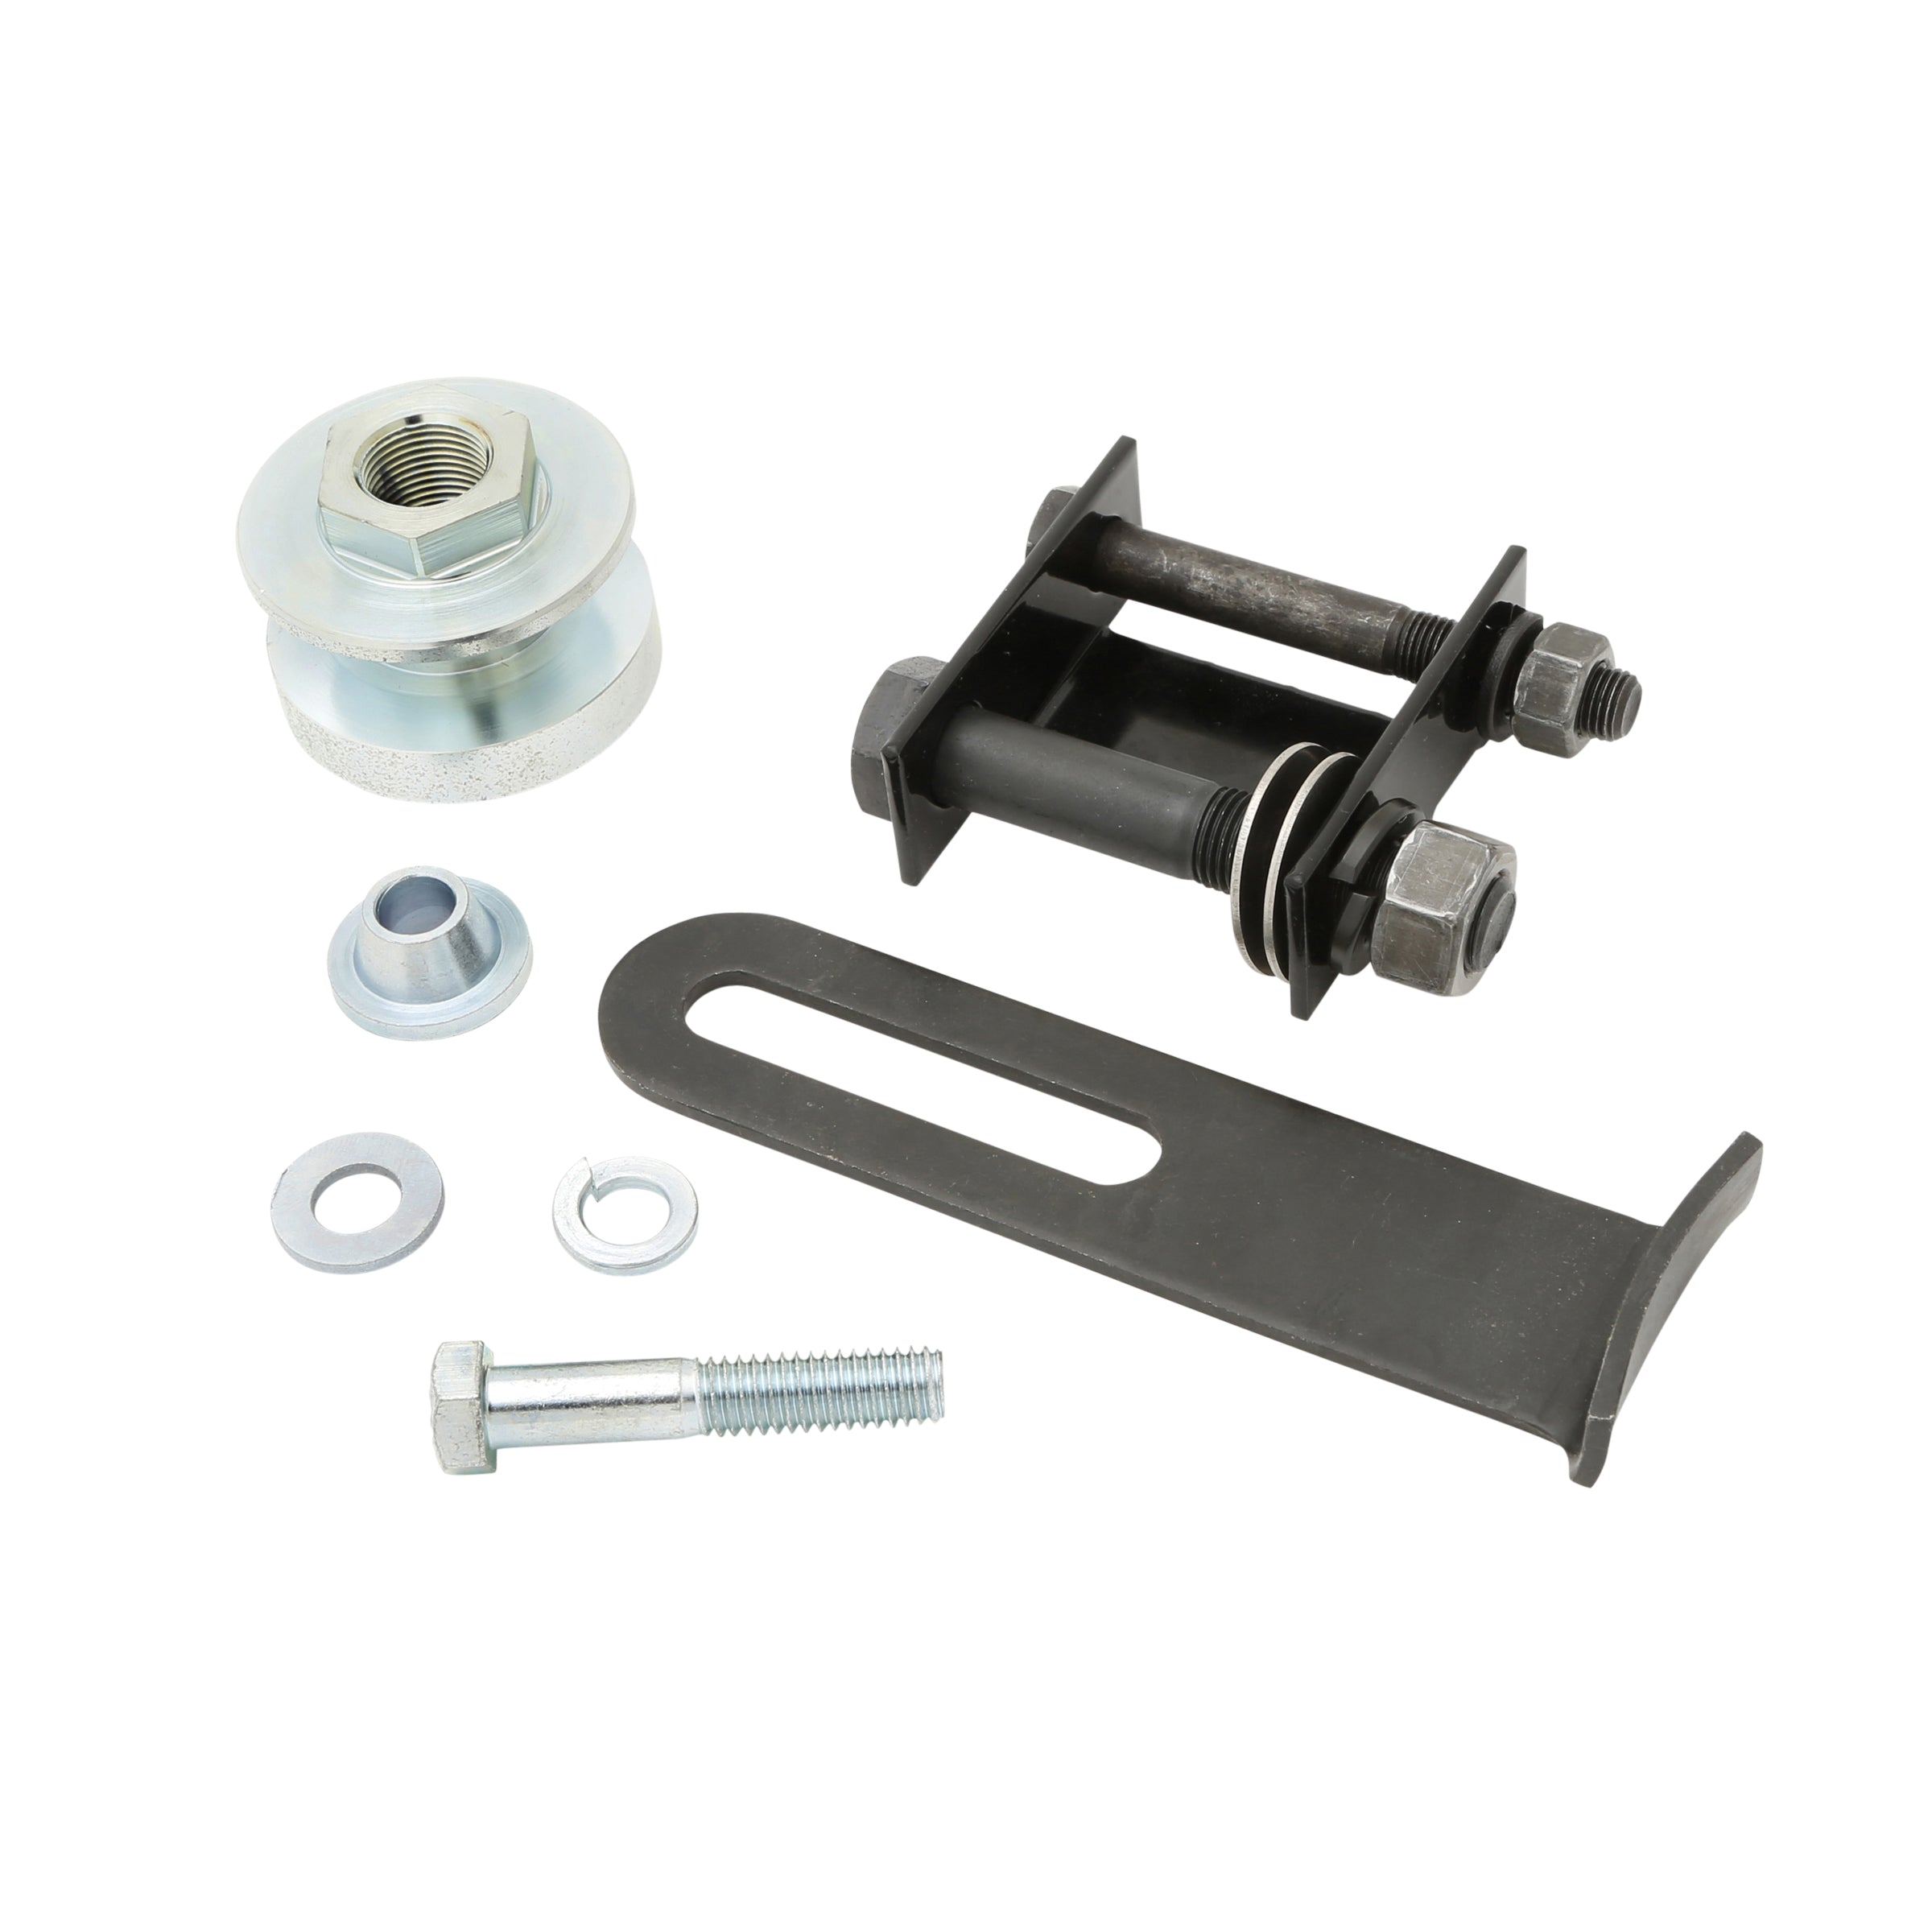 Alternator Mounting Kit • 1928-31 Model A Ford